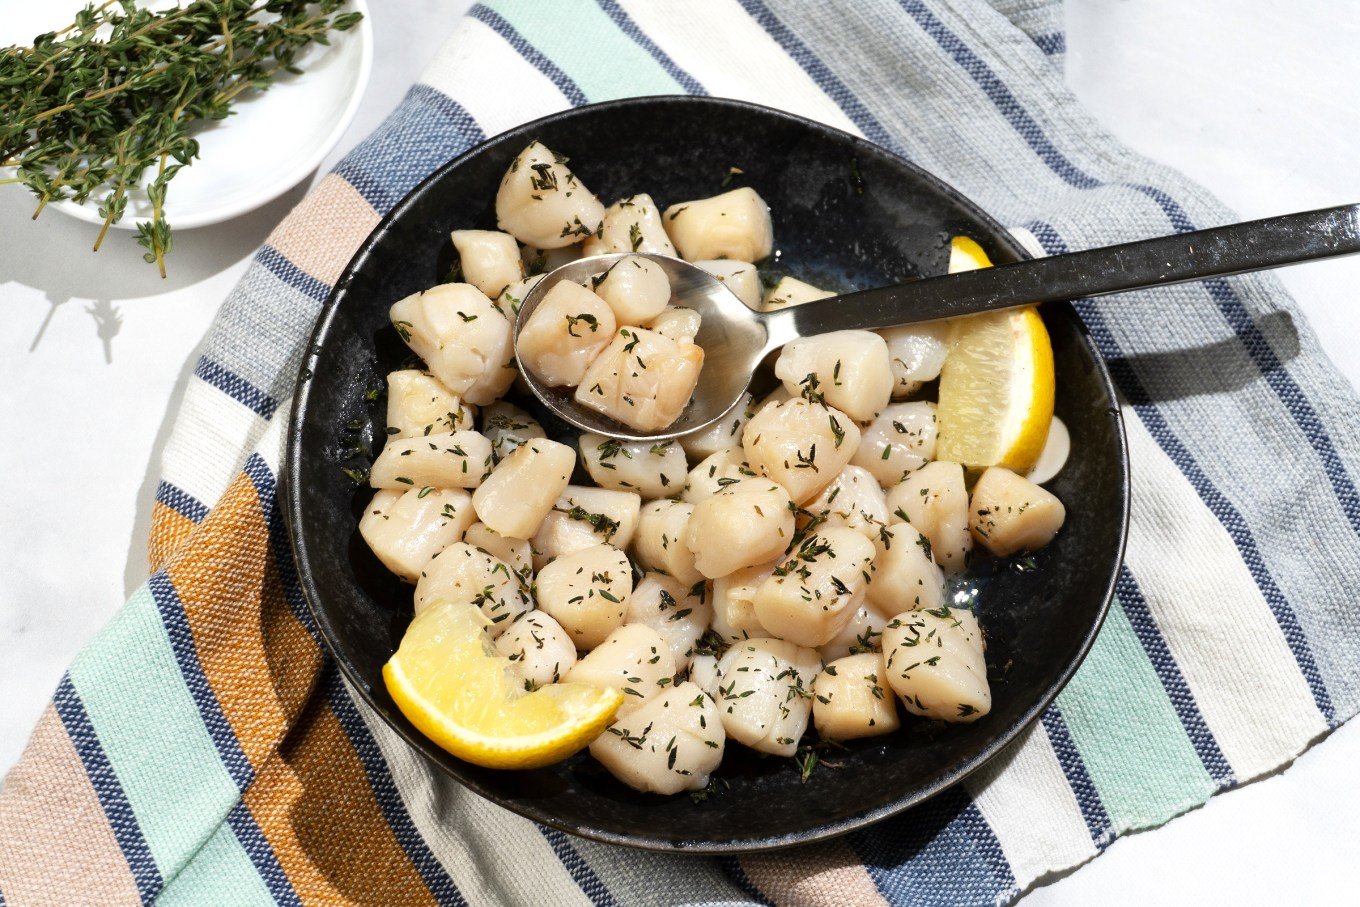 Roast Scallops with Herb Butter